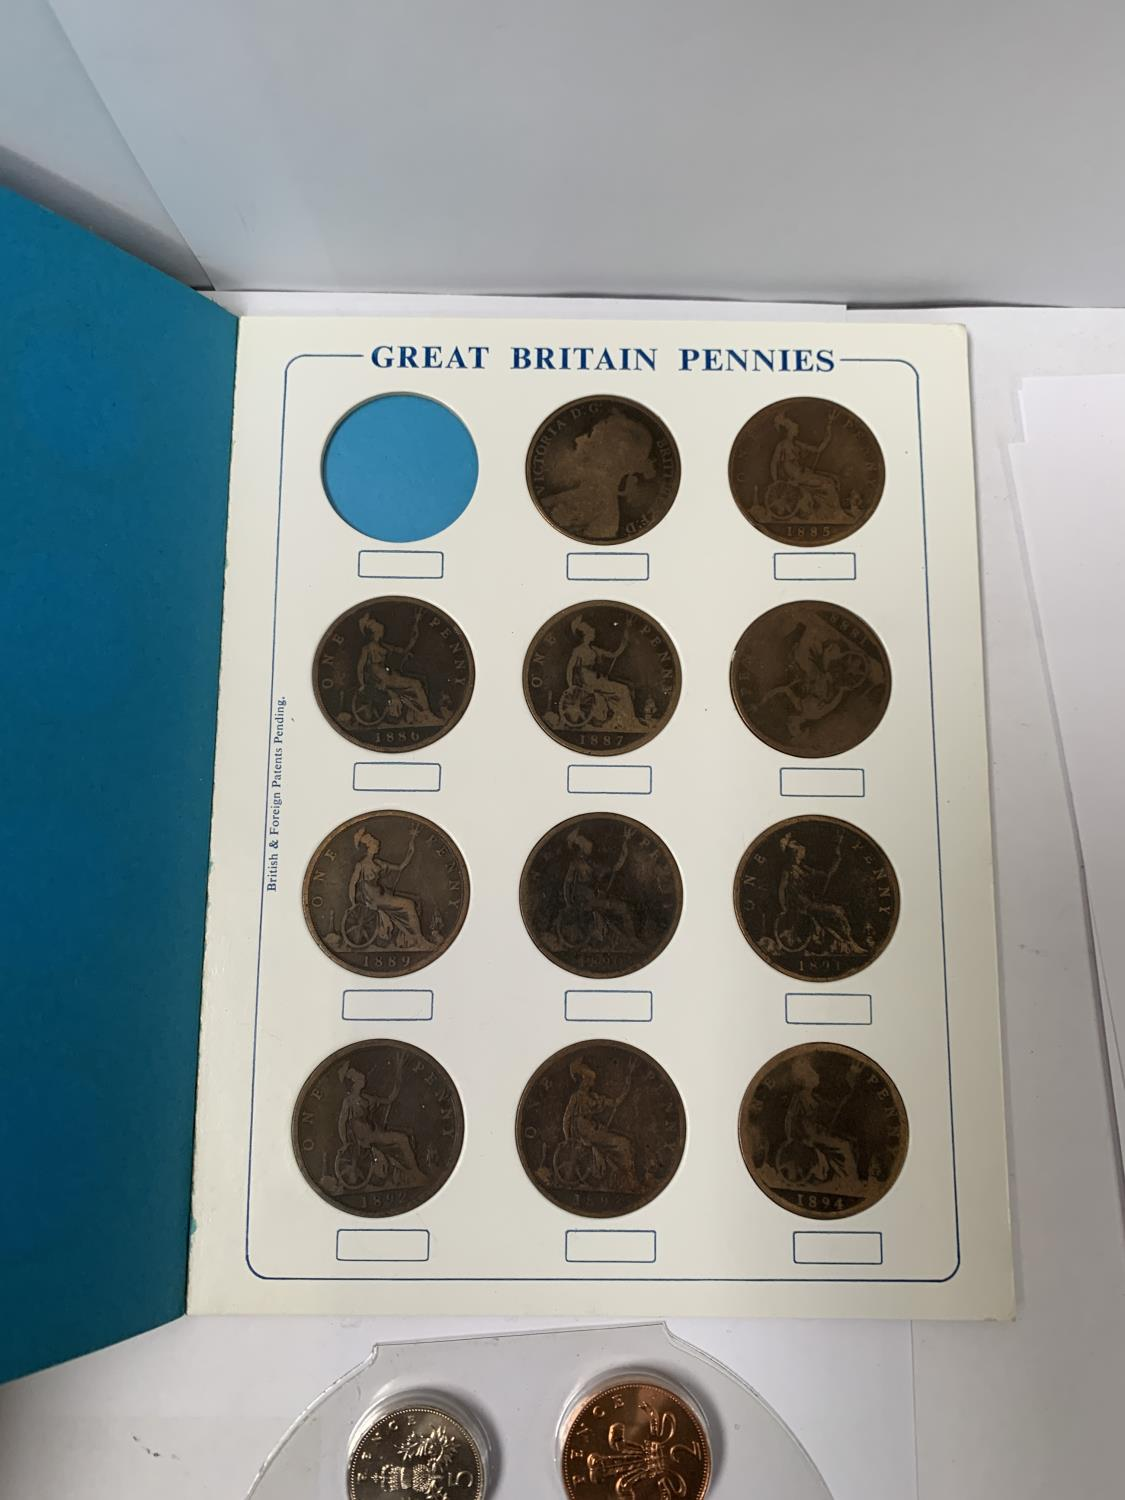 Lot 1103 - A SANDHILL COIN FOLDER PENNIES AND HALF PENNIES BOOKLET TOGETHER WITH A COLLECTION OF BRITISH COINS